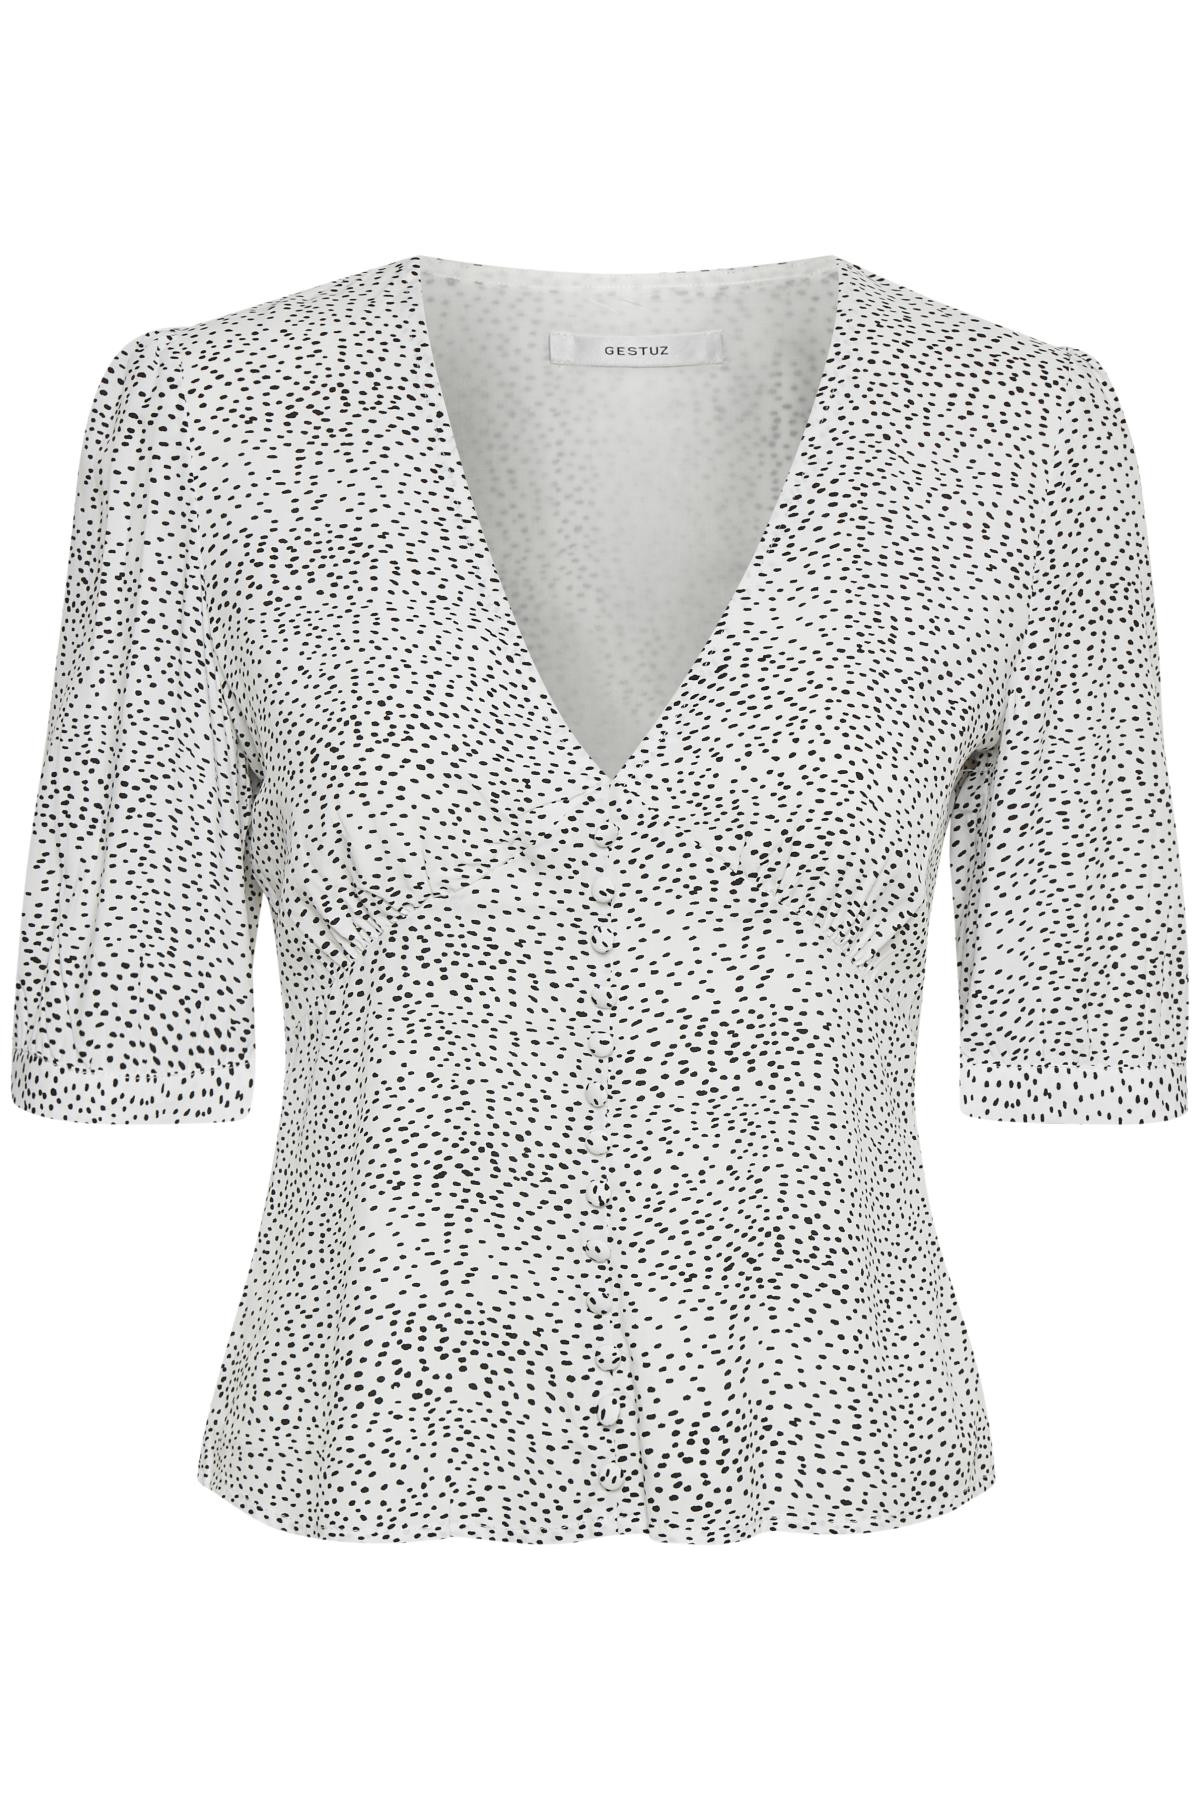 Image of   GESTUZ CATHRINGZ BLUSE (White With Black Dot 90269, 34)